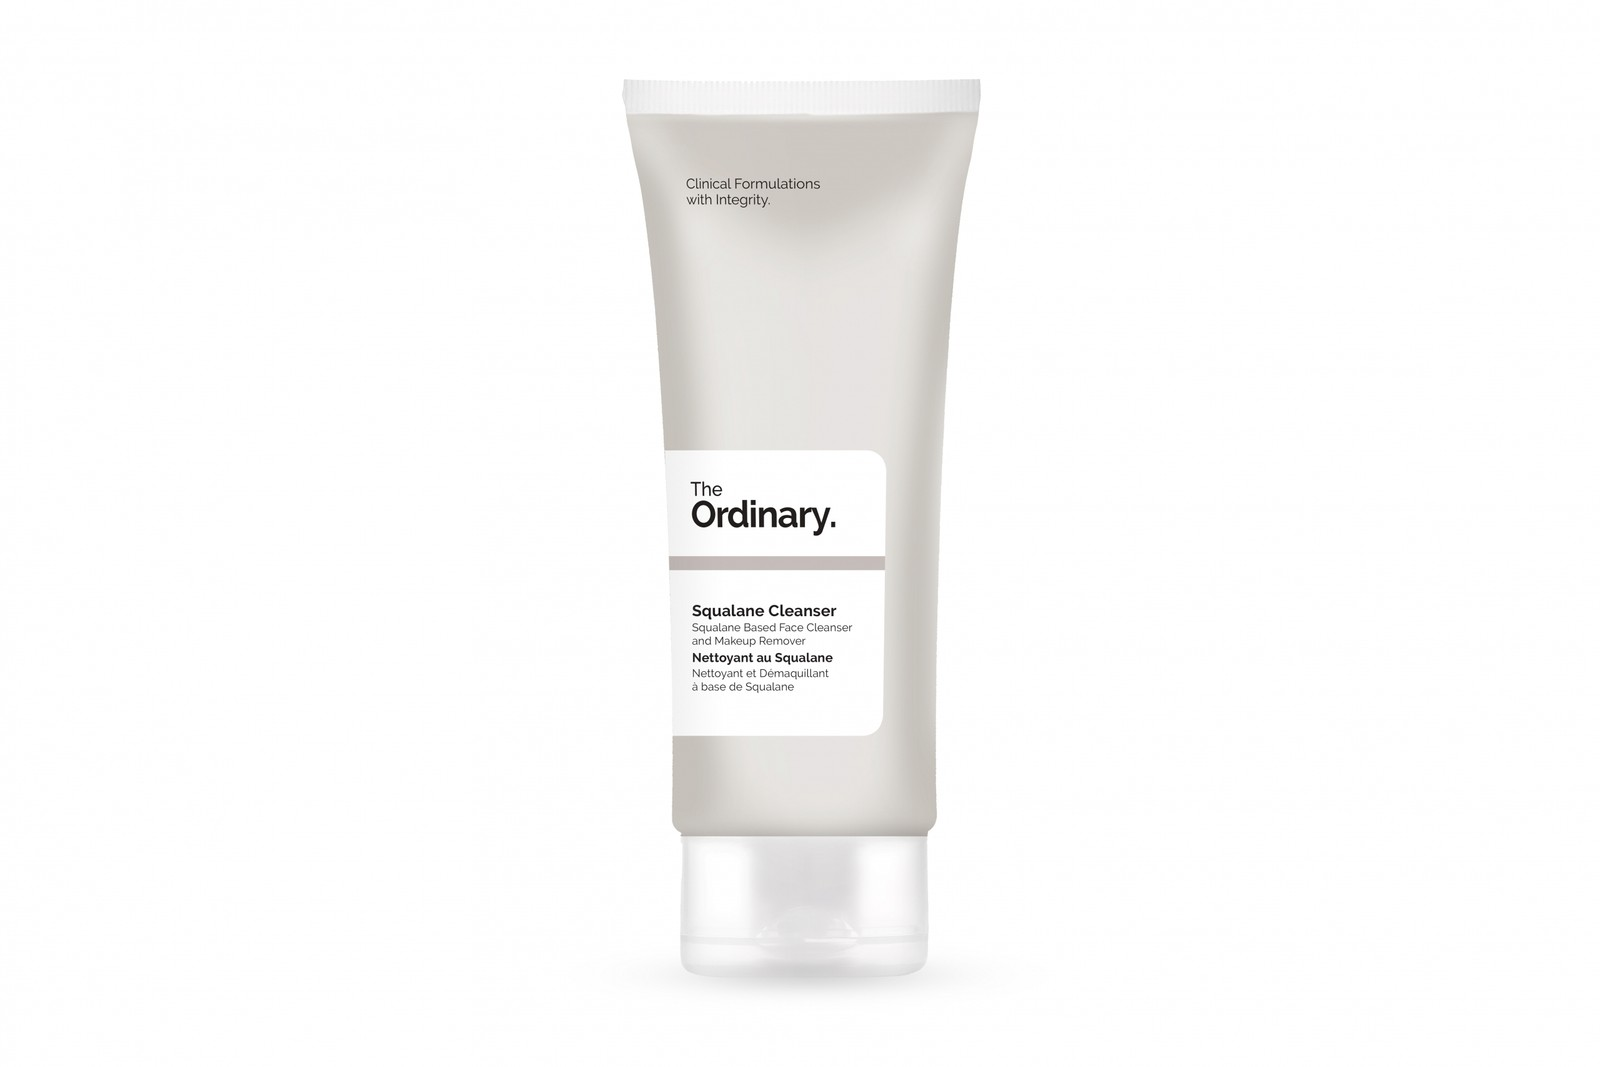 Best Winter Skincare from The Ordinary DECIEM Niod HYLAMIDE Beauty Products Review Recommendations Hydration Skin